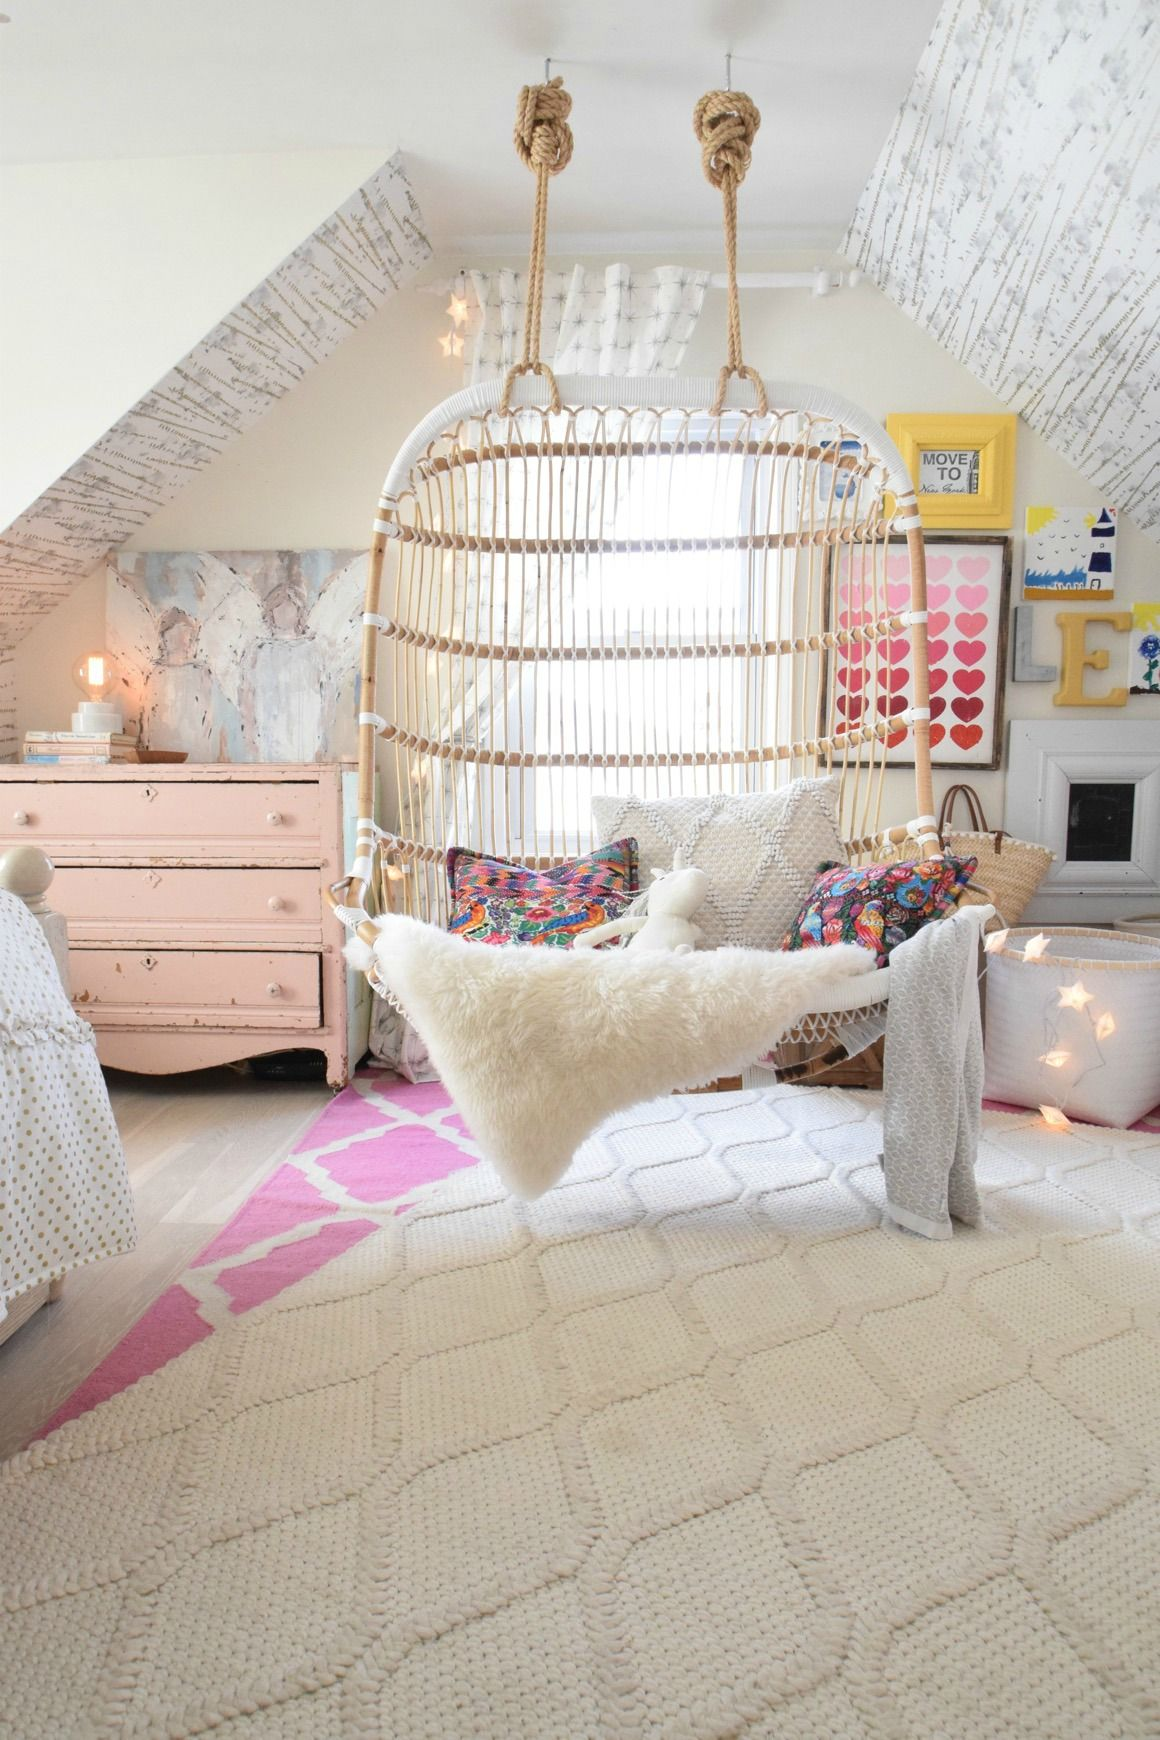 Dreamy kids retreat courtesy of Nesting With